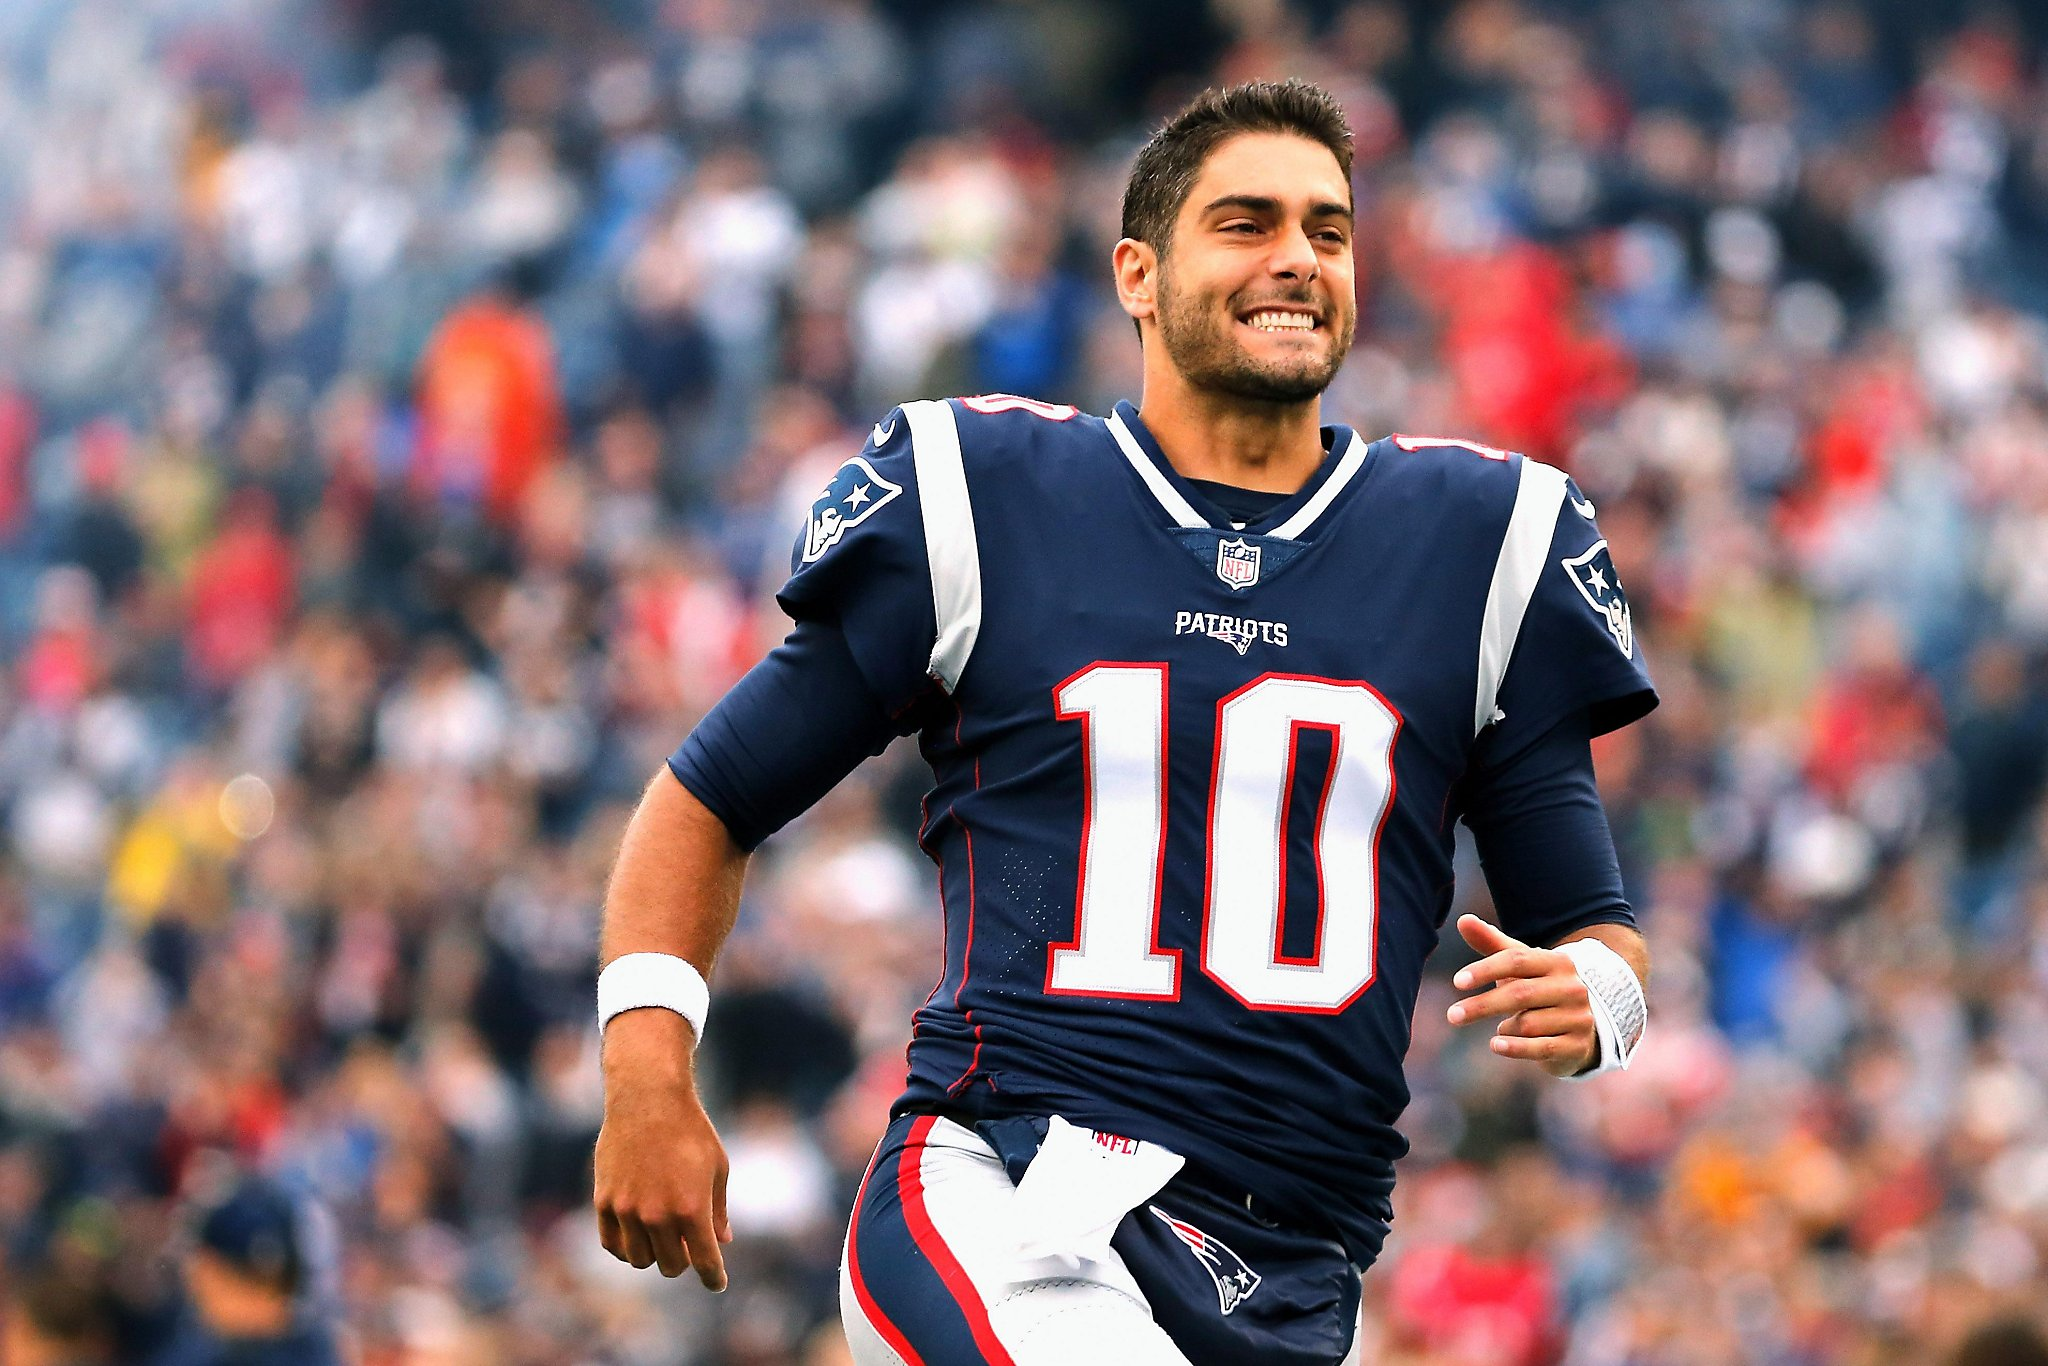 Report: 49ers deal for Patriots QB Jimmy Garoppolo - SFGate